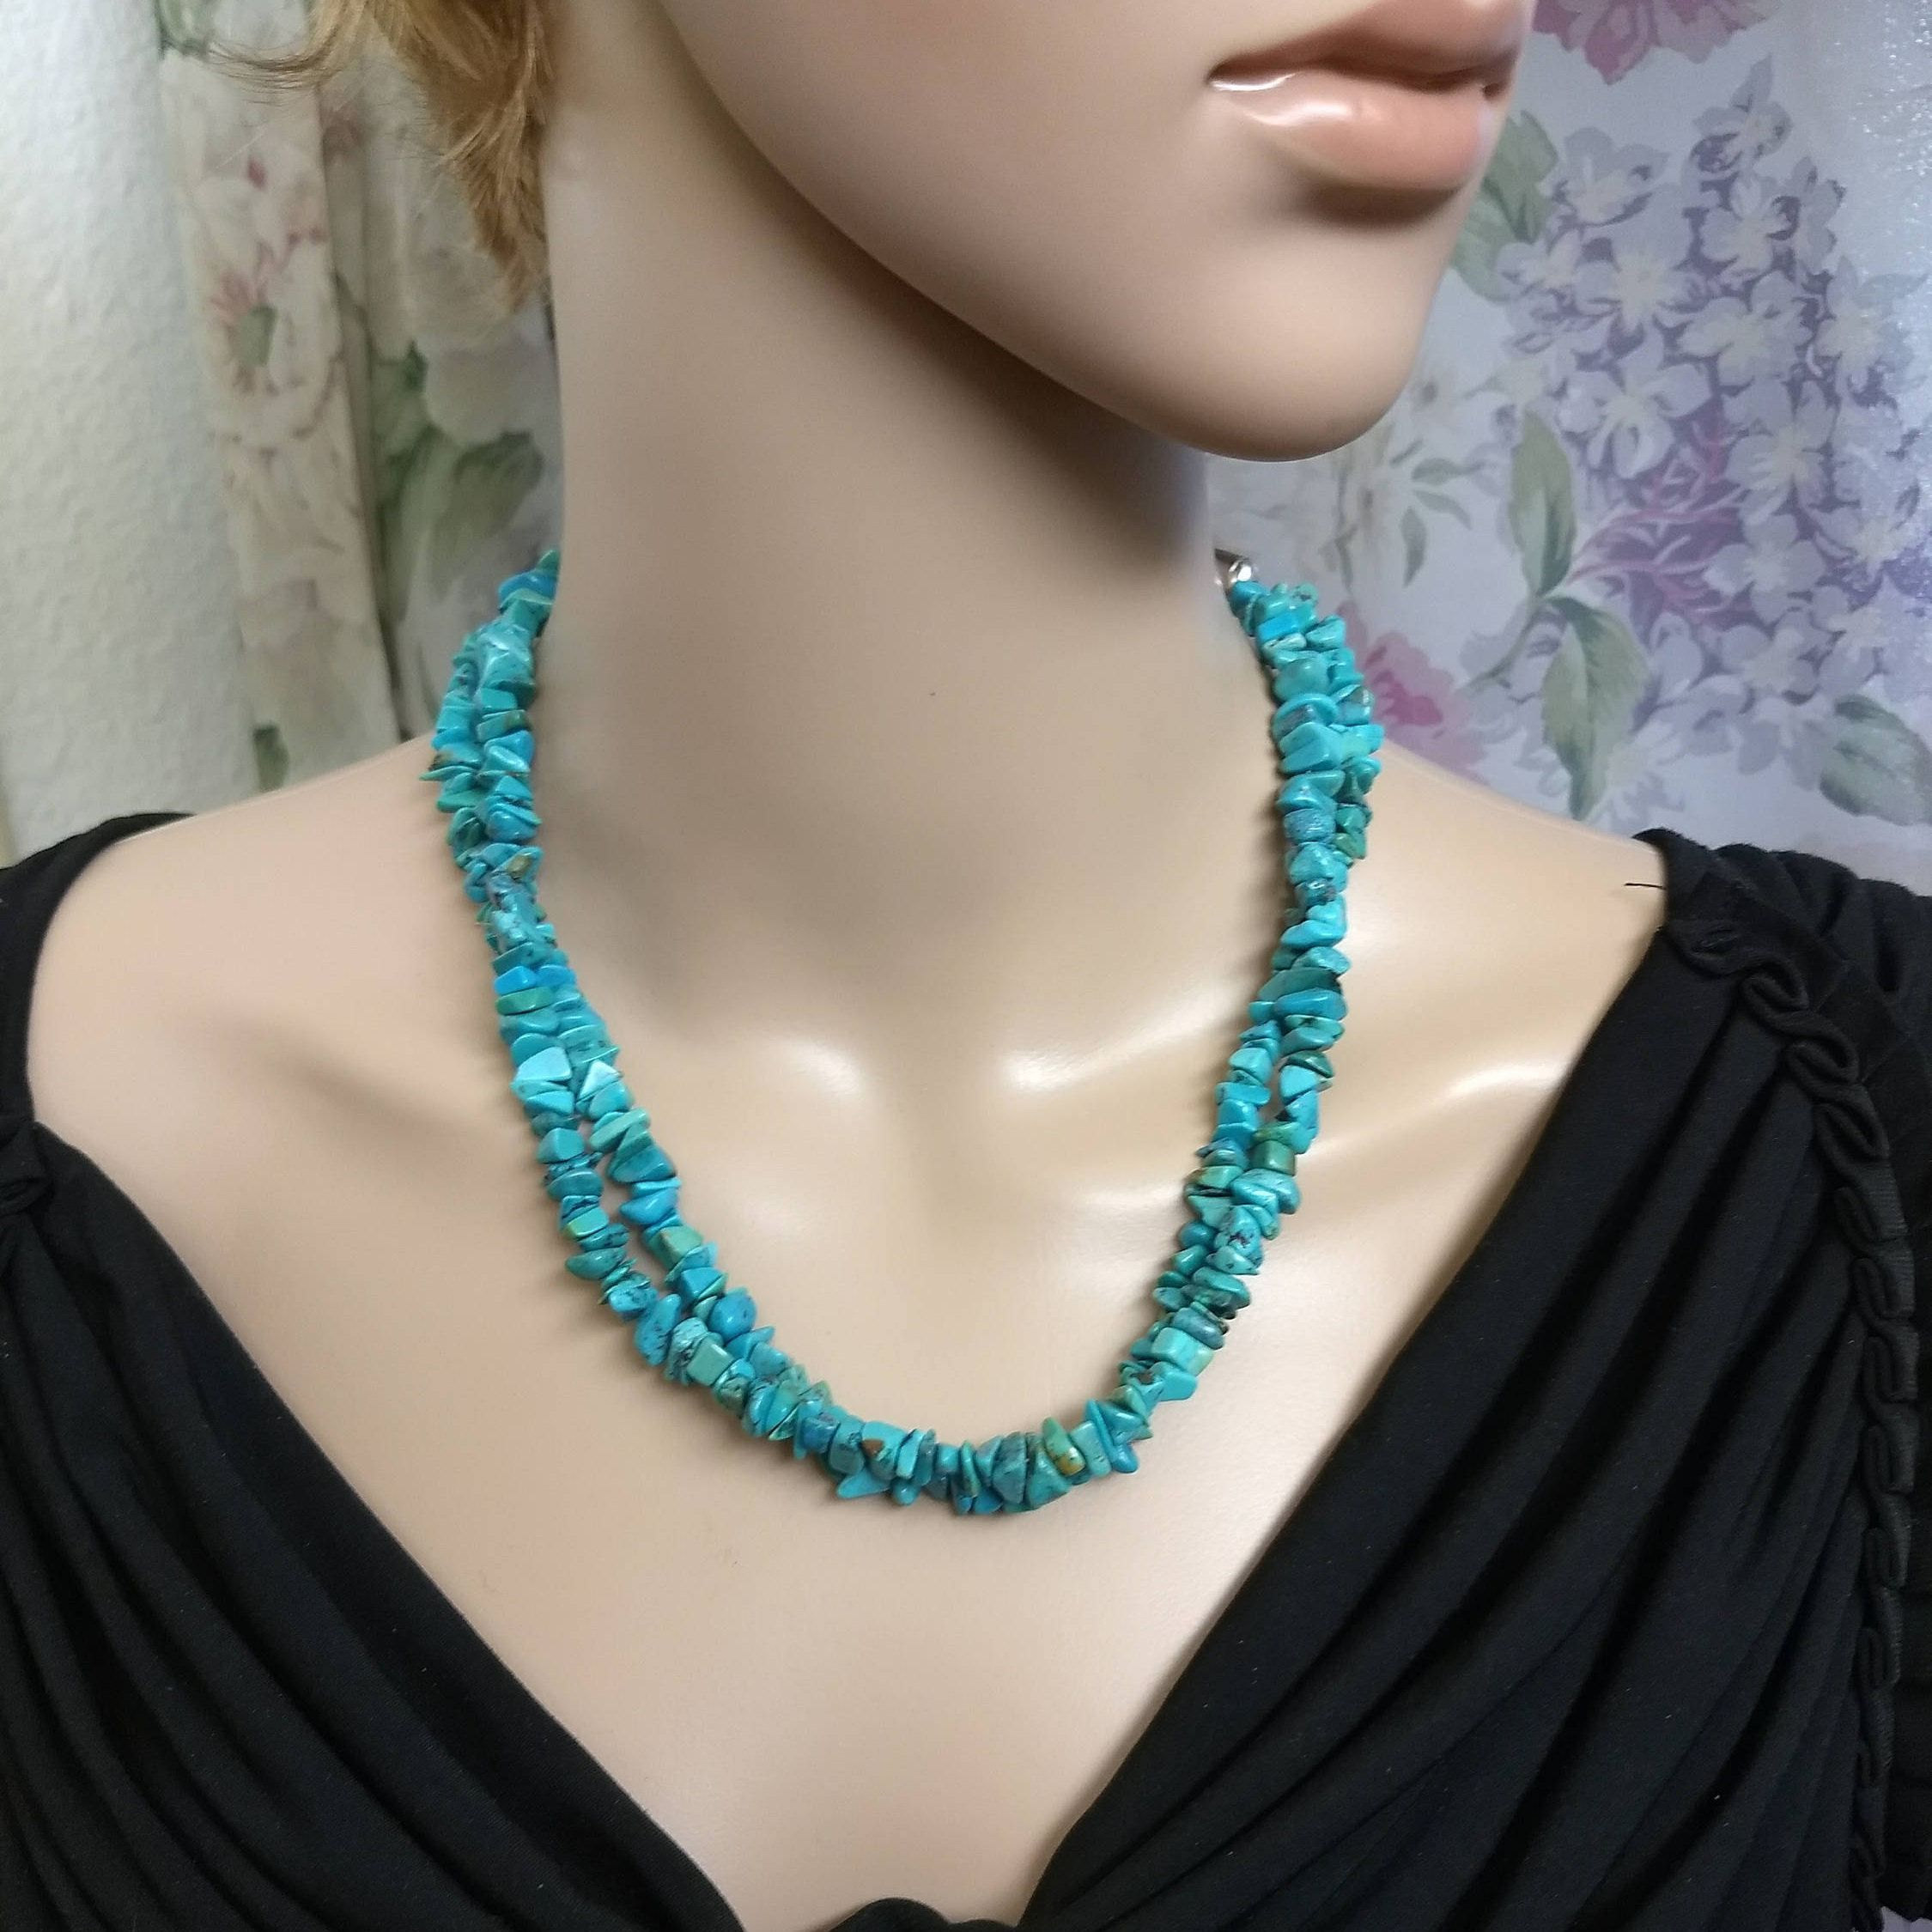 Carolyn Pollack RELIOS Turquoise Sterling Navajo Style Necklace ~ Vintage Relios Double Strand Turquoise Stone Sterling Southwest Necklace by JewelryGenealogy on Etsy